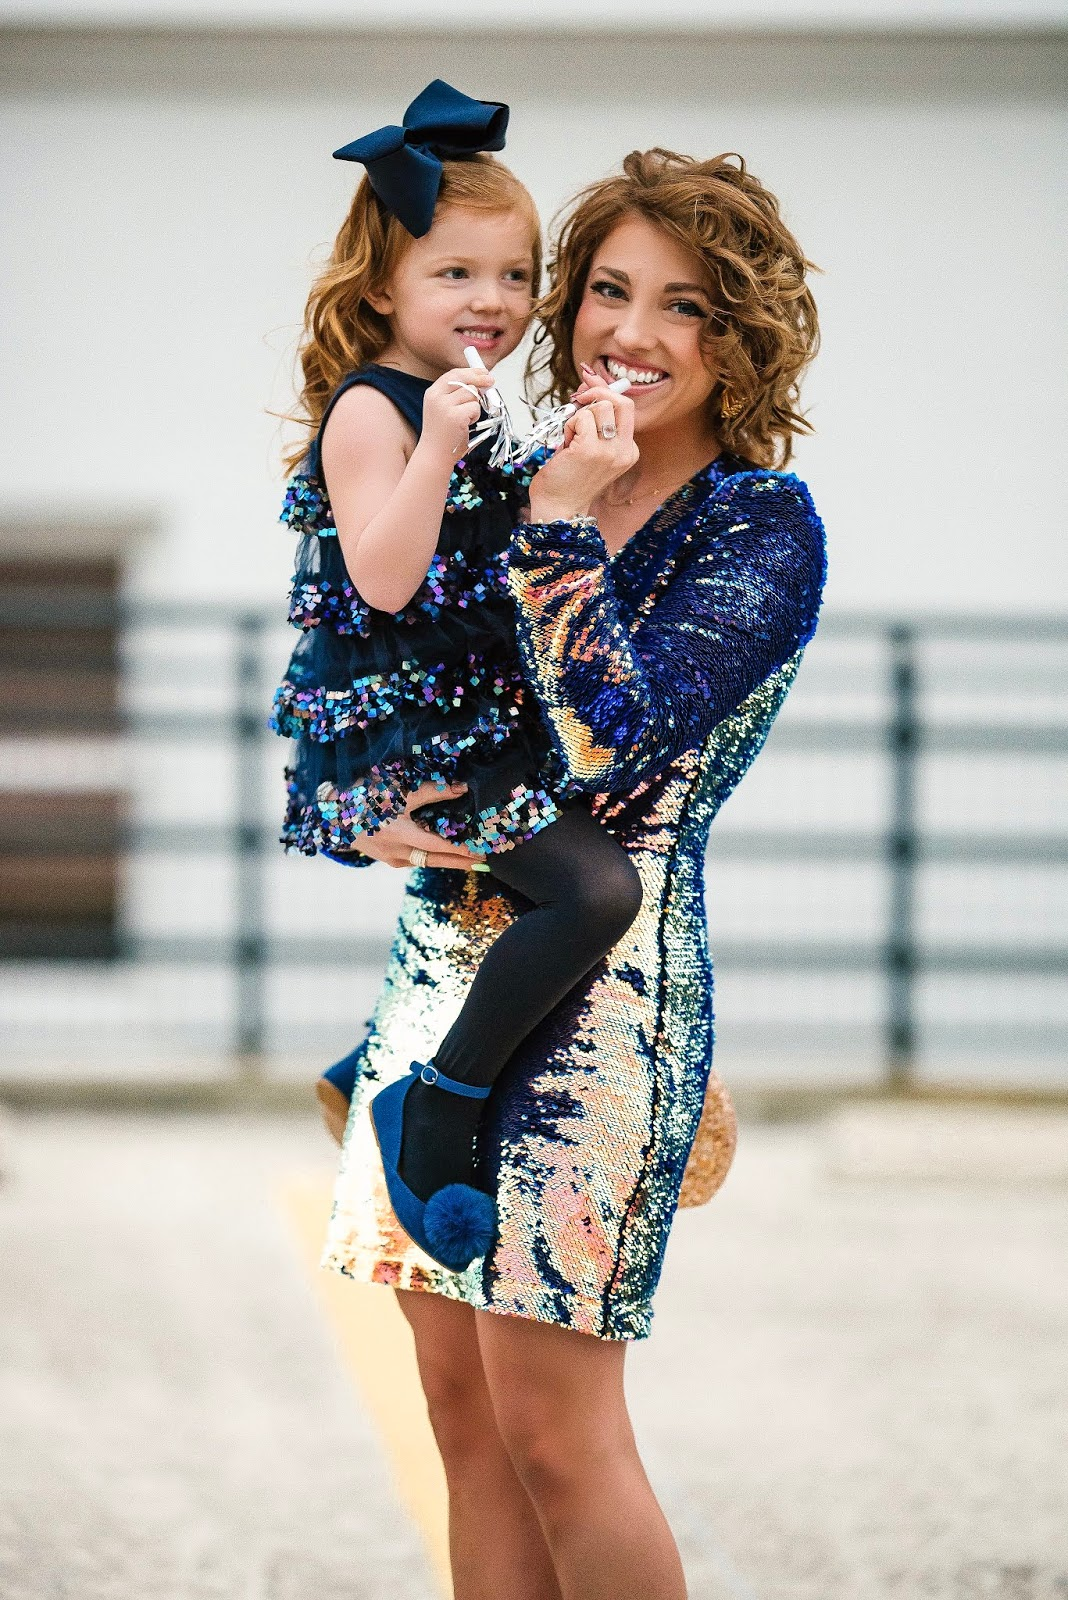 Ringing in the new year with sequins: Mommy and Me NYE Looks + Reflecting on 2018 - Something Delightful Blog